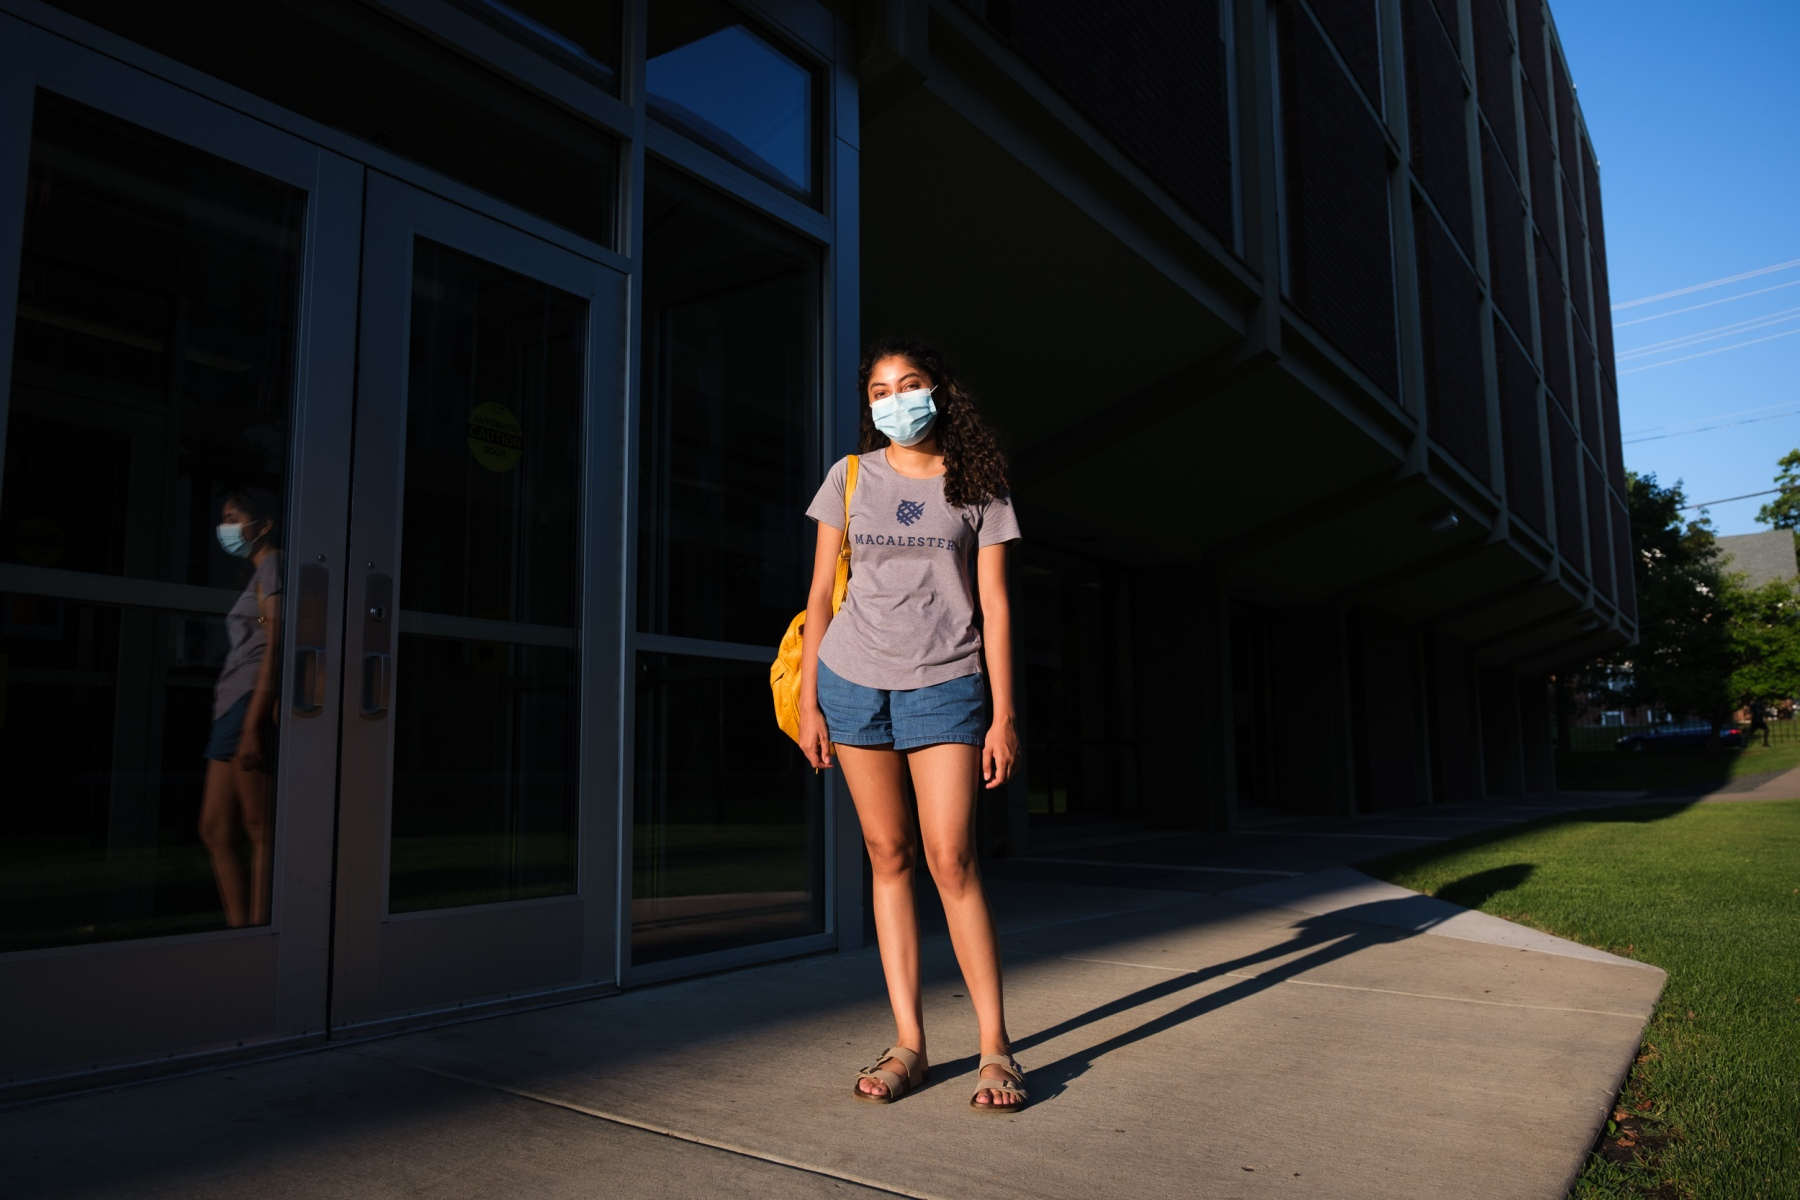 As summer ends, the Class of 2024 begins college amid a devastating pandemic and a national reckoning with systemic racism. Macalester first year Kamini Ramakrishna poses for a portrait outside Dupre Residence Hall on August 28, 2020.